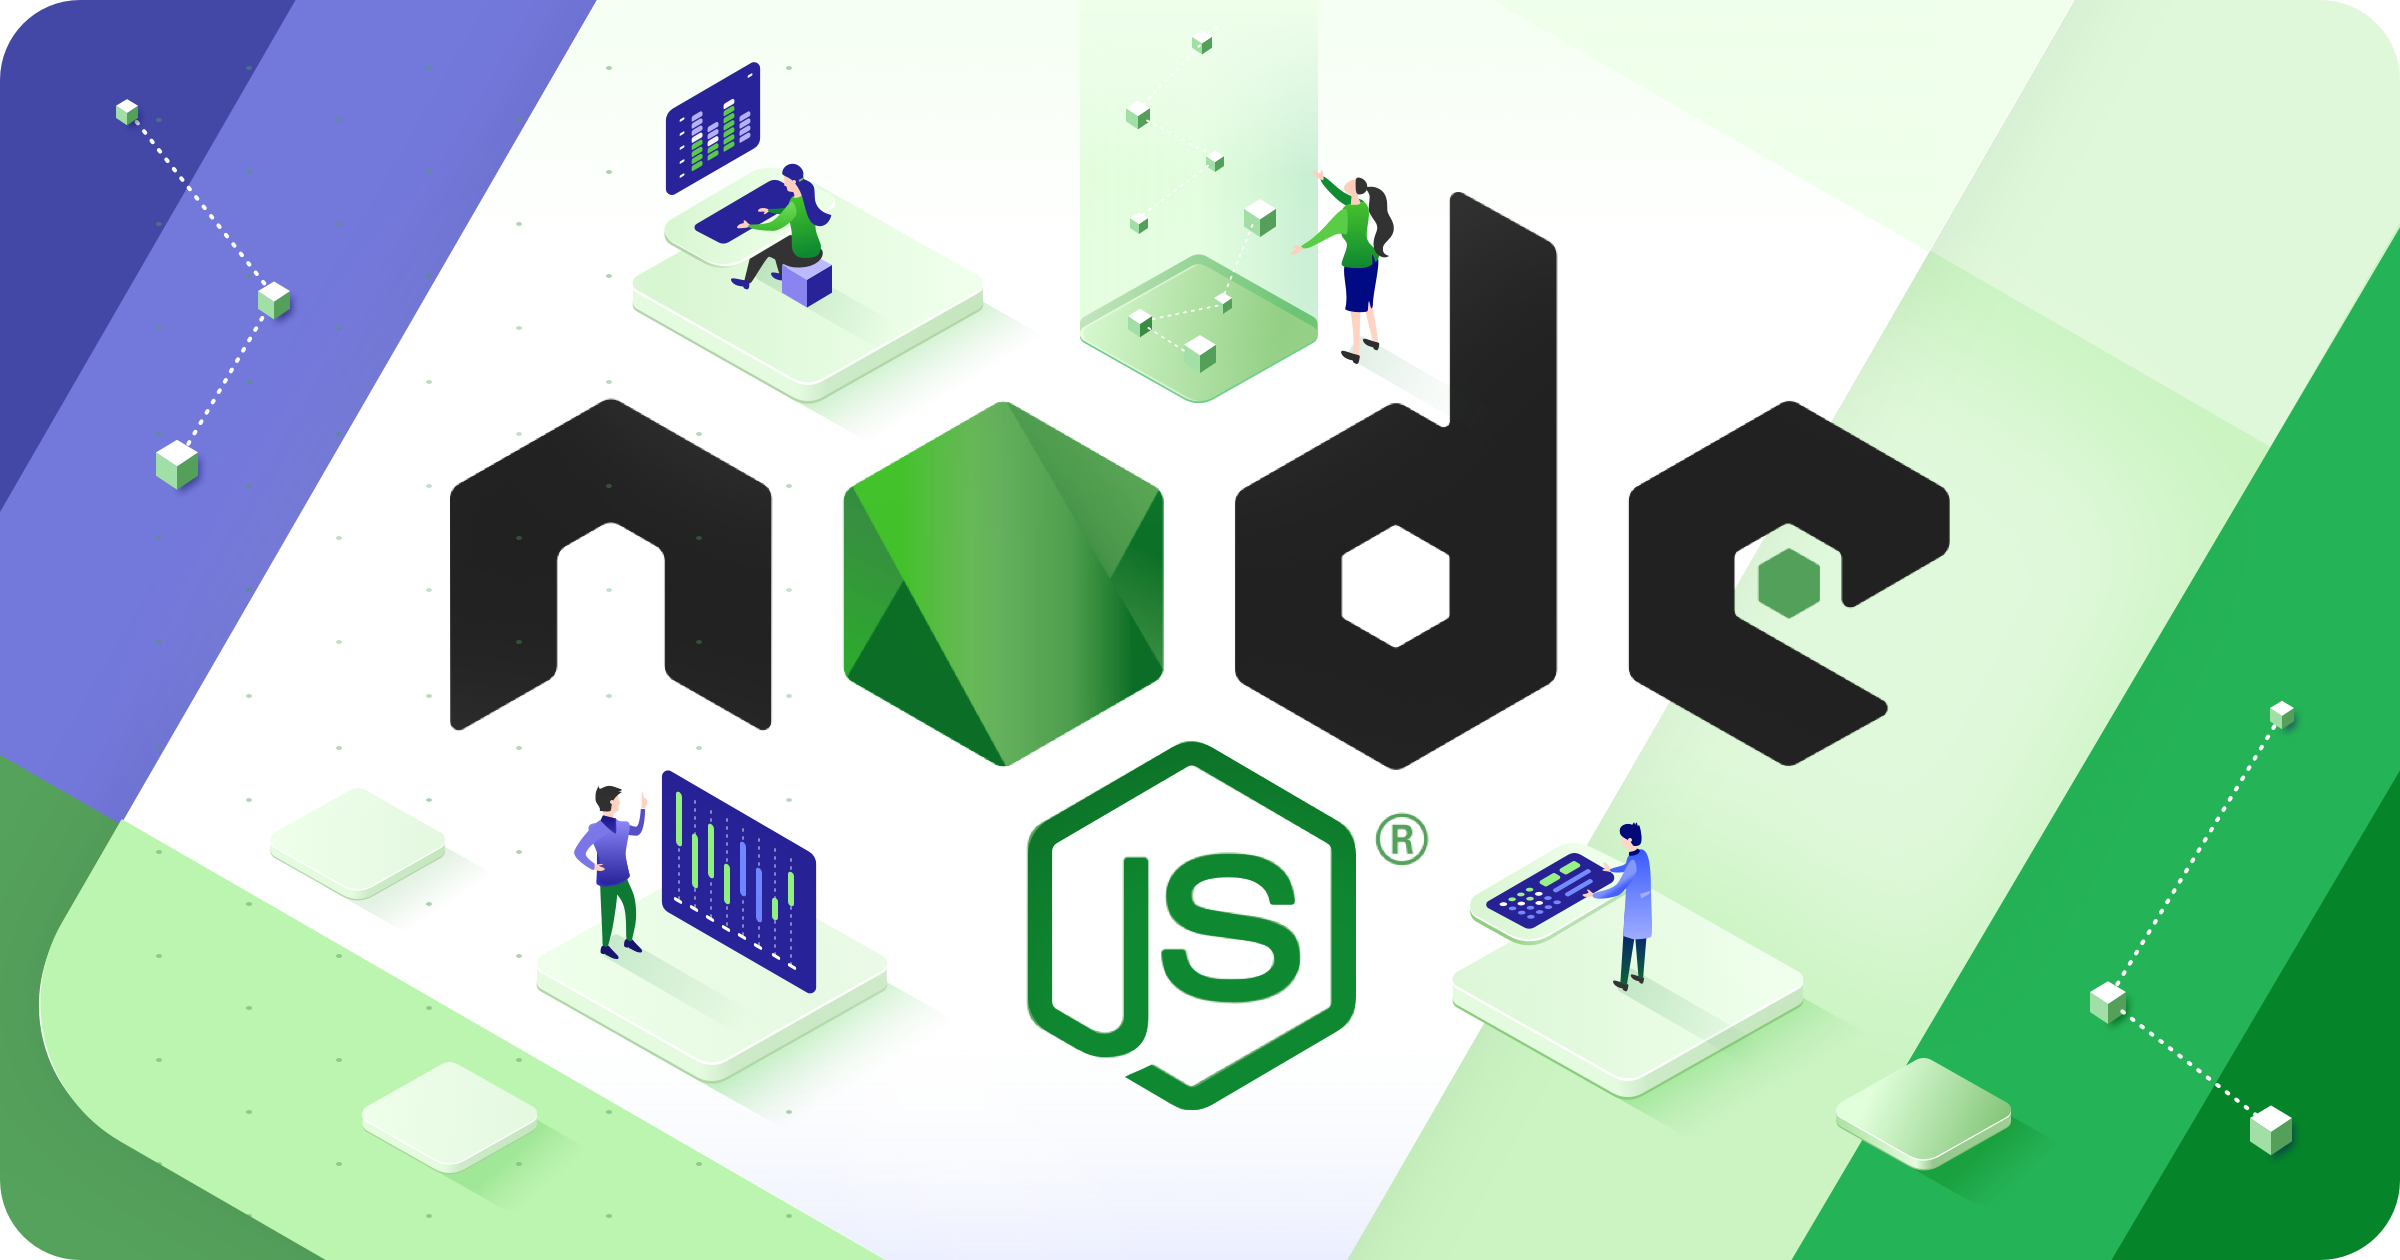 What Nodejs is used for?